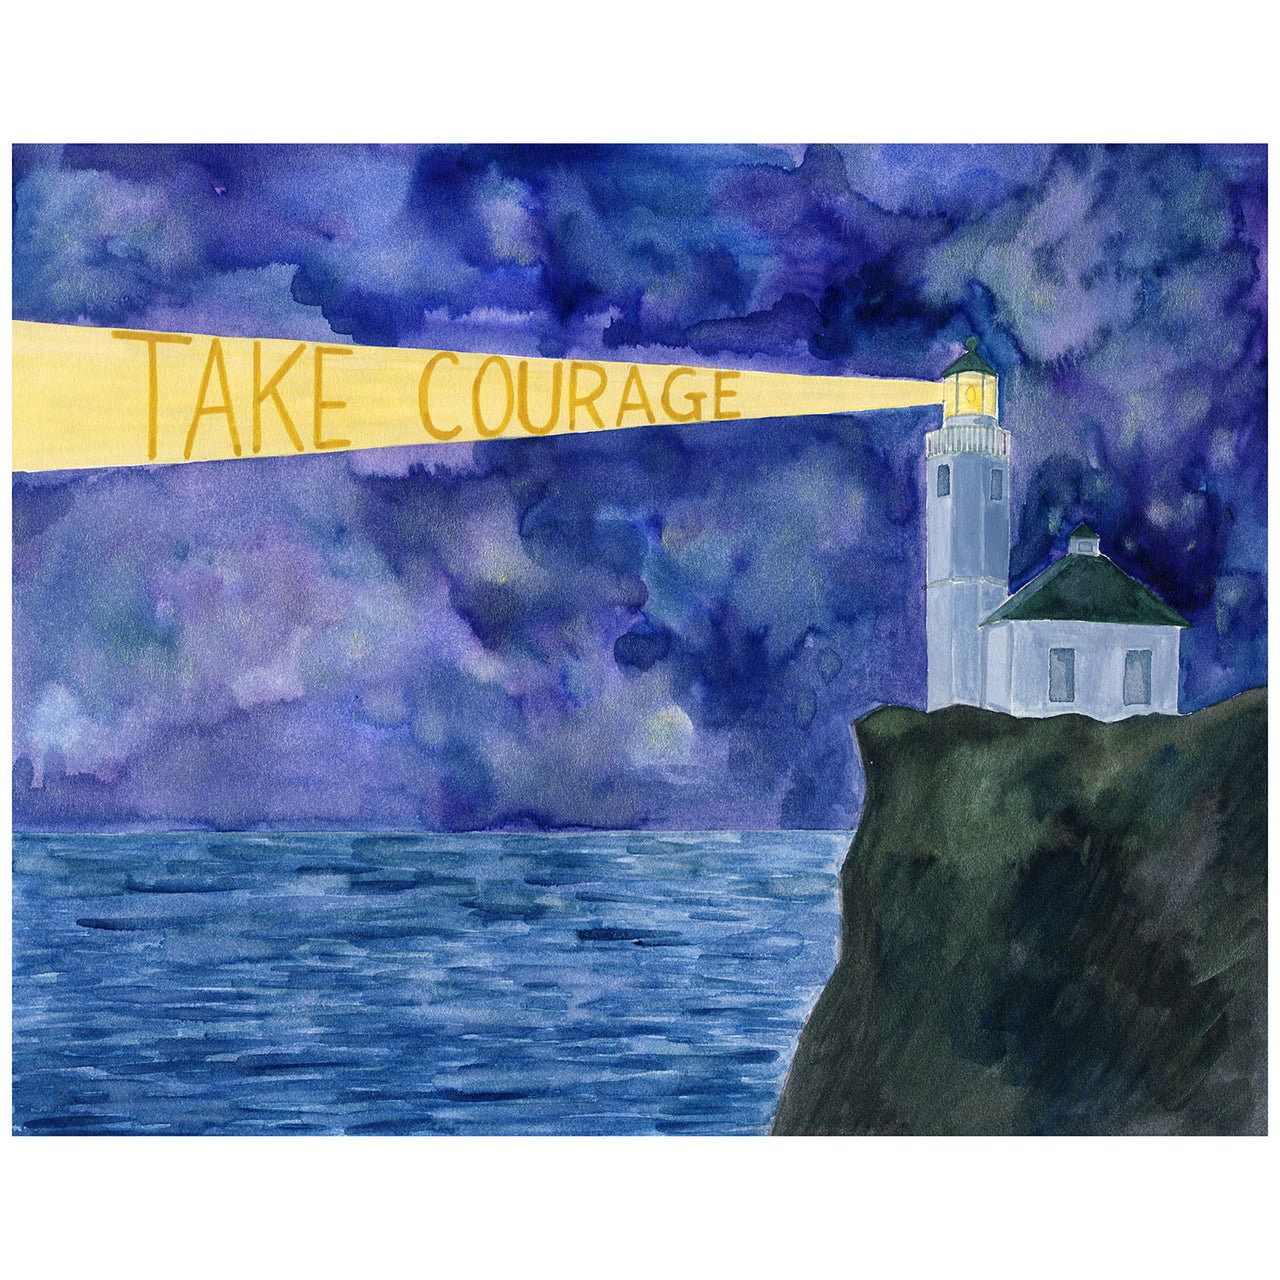 Take Courage Original watercolor painting by Yardia. Lighthouse painting